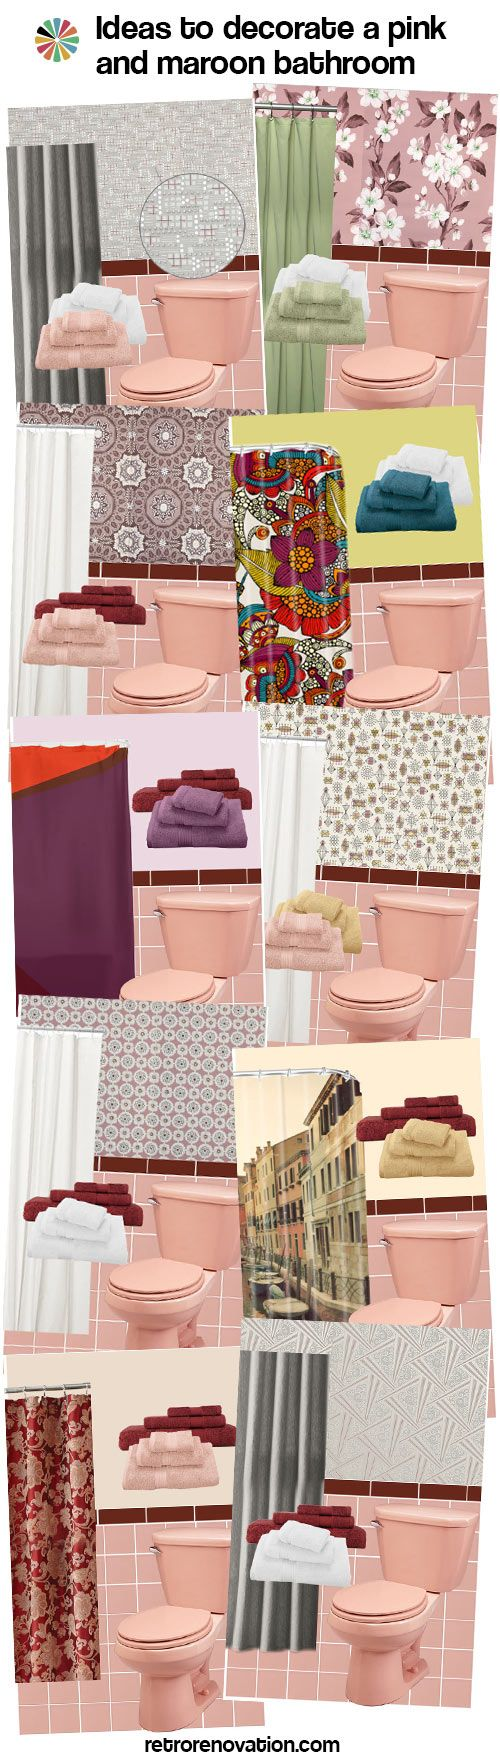 best 25+ burgundy bathroom ideas on pinterest | burgundy room